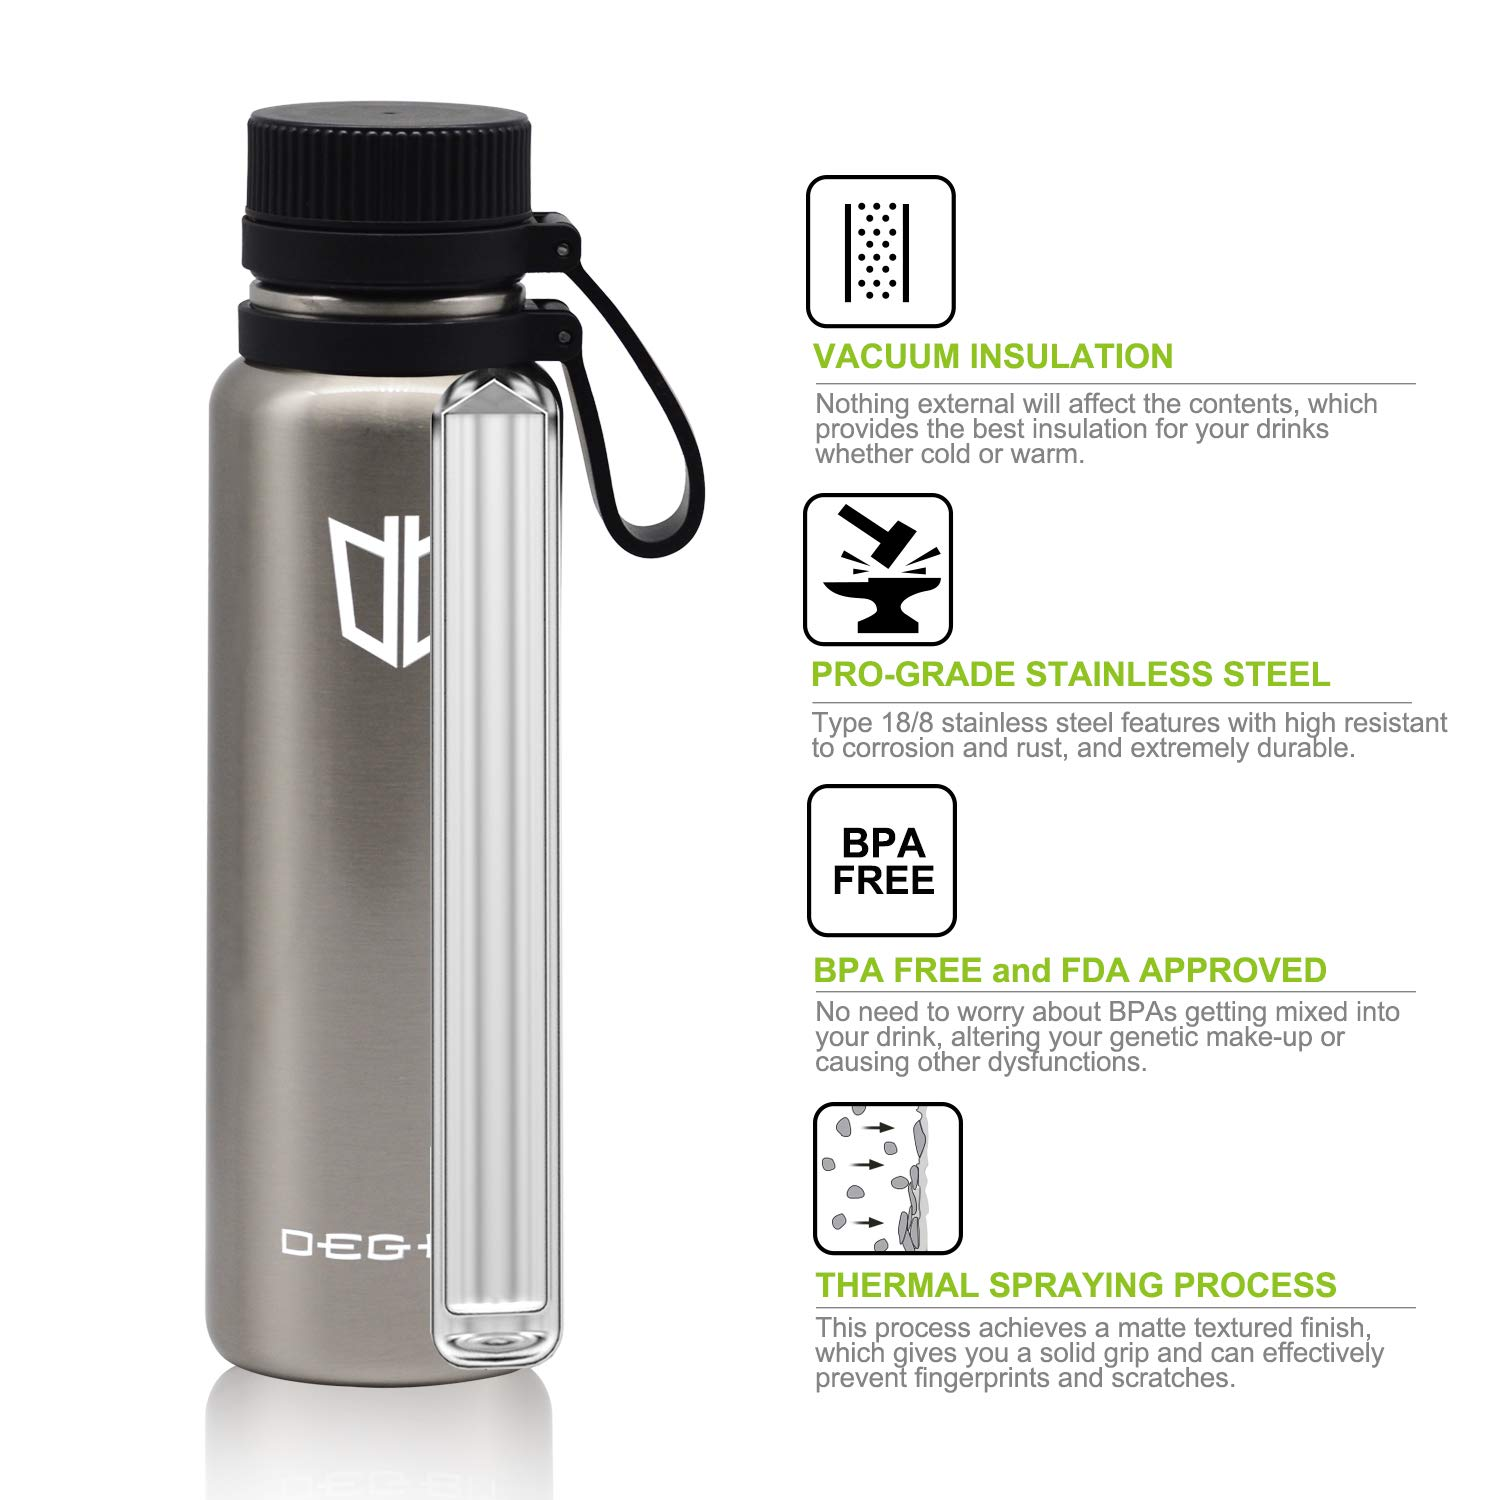 4fedc50c49 Amazon.com : DB DEGBIT Up to 20 Hrs Cold Vacuum Insulated 18/8 Food Grade  Stainless Steel Leak Proof Sports Water Bottle, Scratch Resistant &  Non-Slip ...